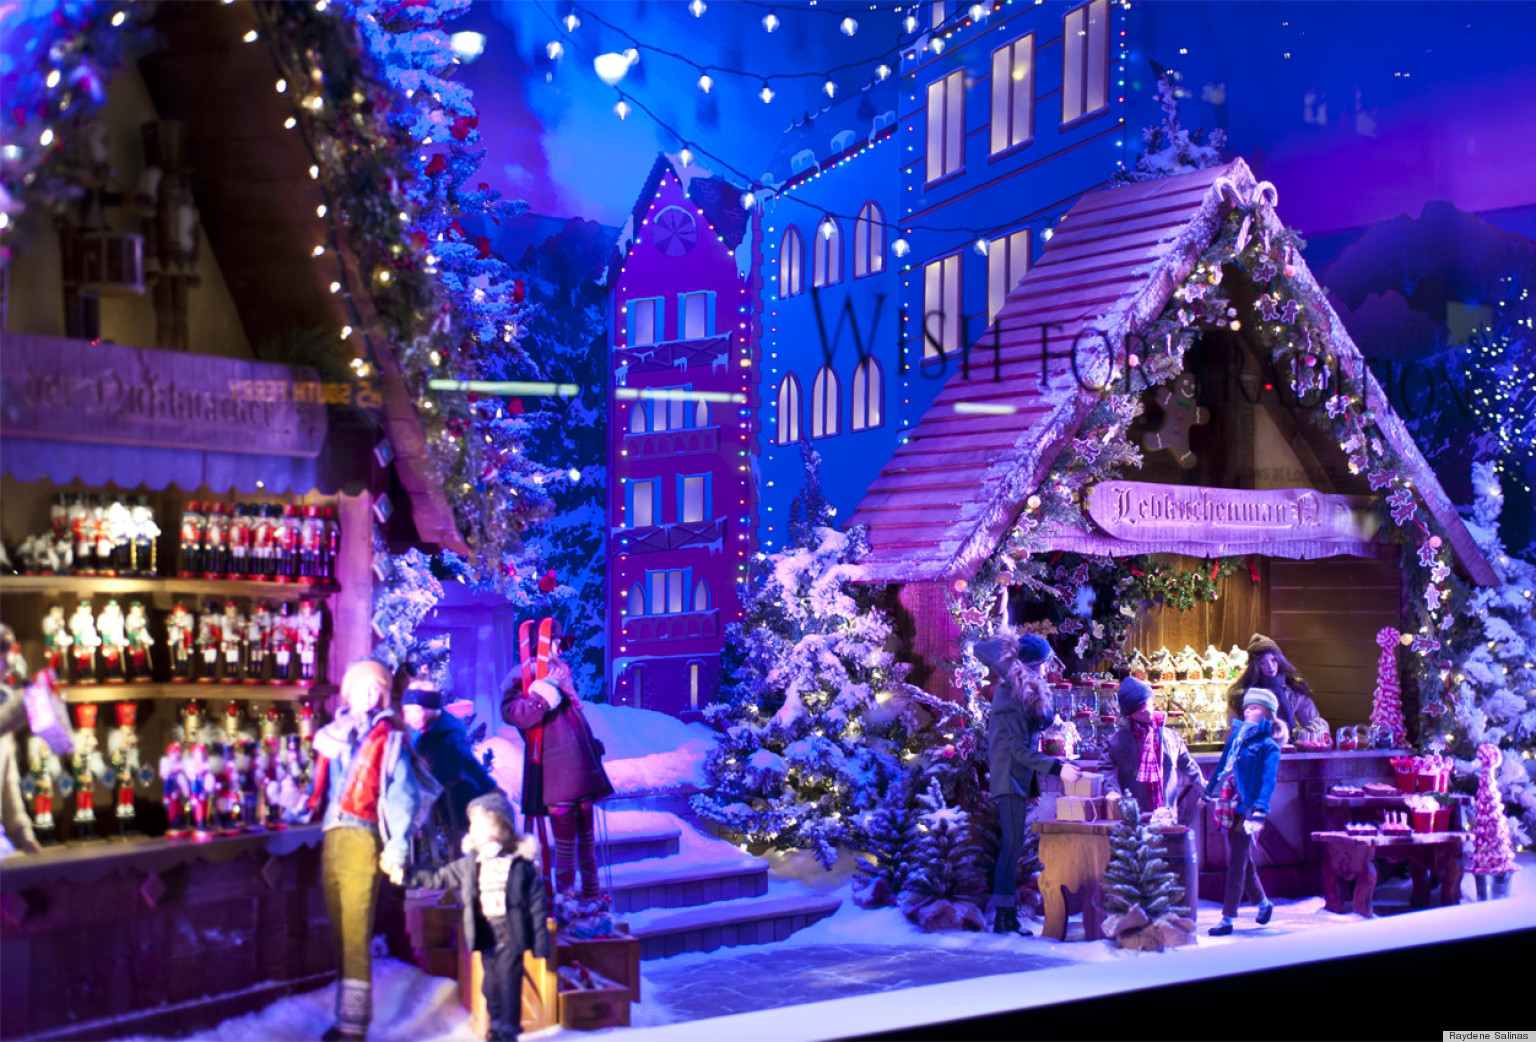 Christmas Window Display Ideas Stores O-store-holiday-window